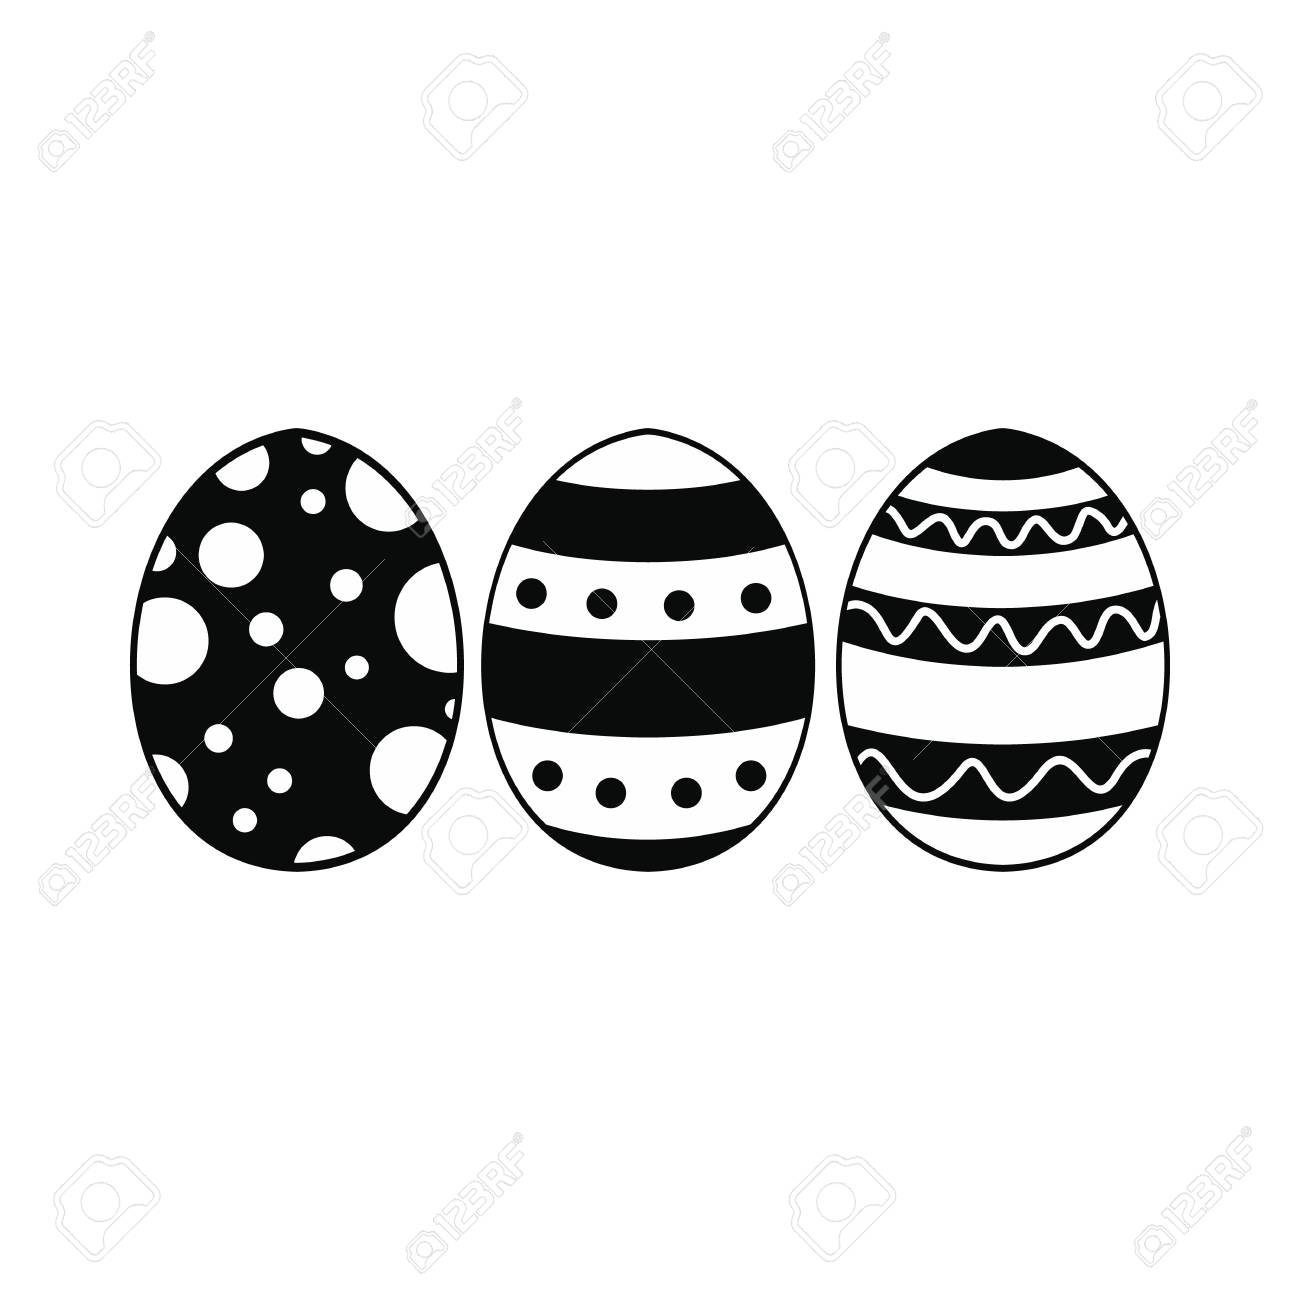 Easter eggs black simple icon isolated on white background.